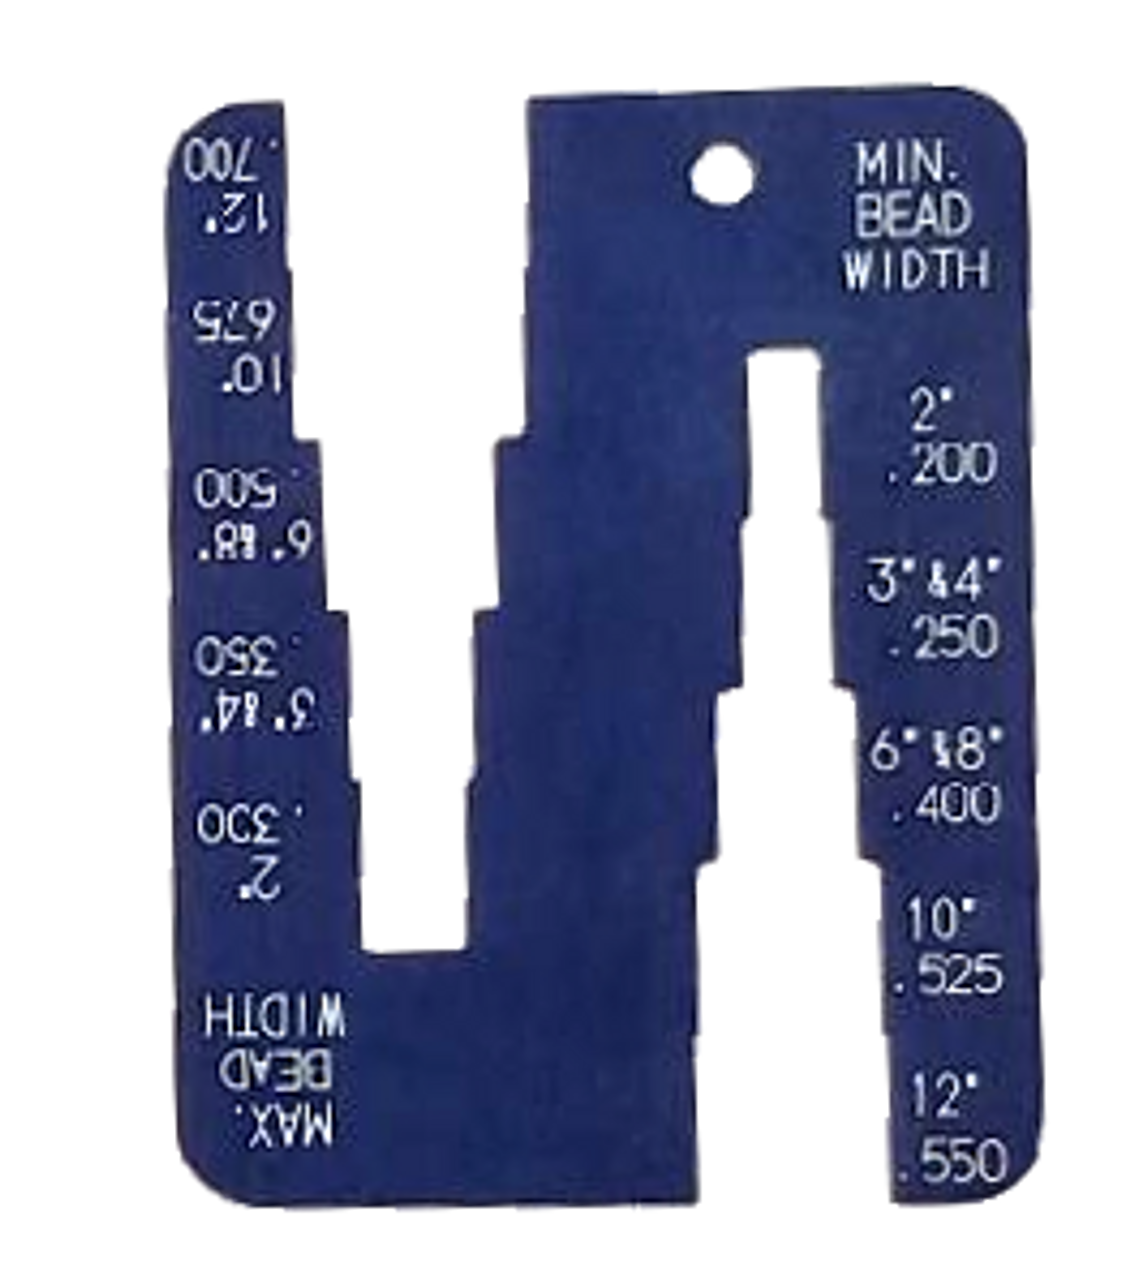 Poly Pipe bead min max thickness gauge.